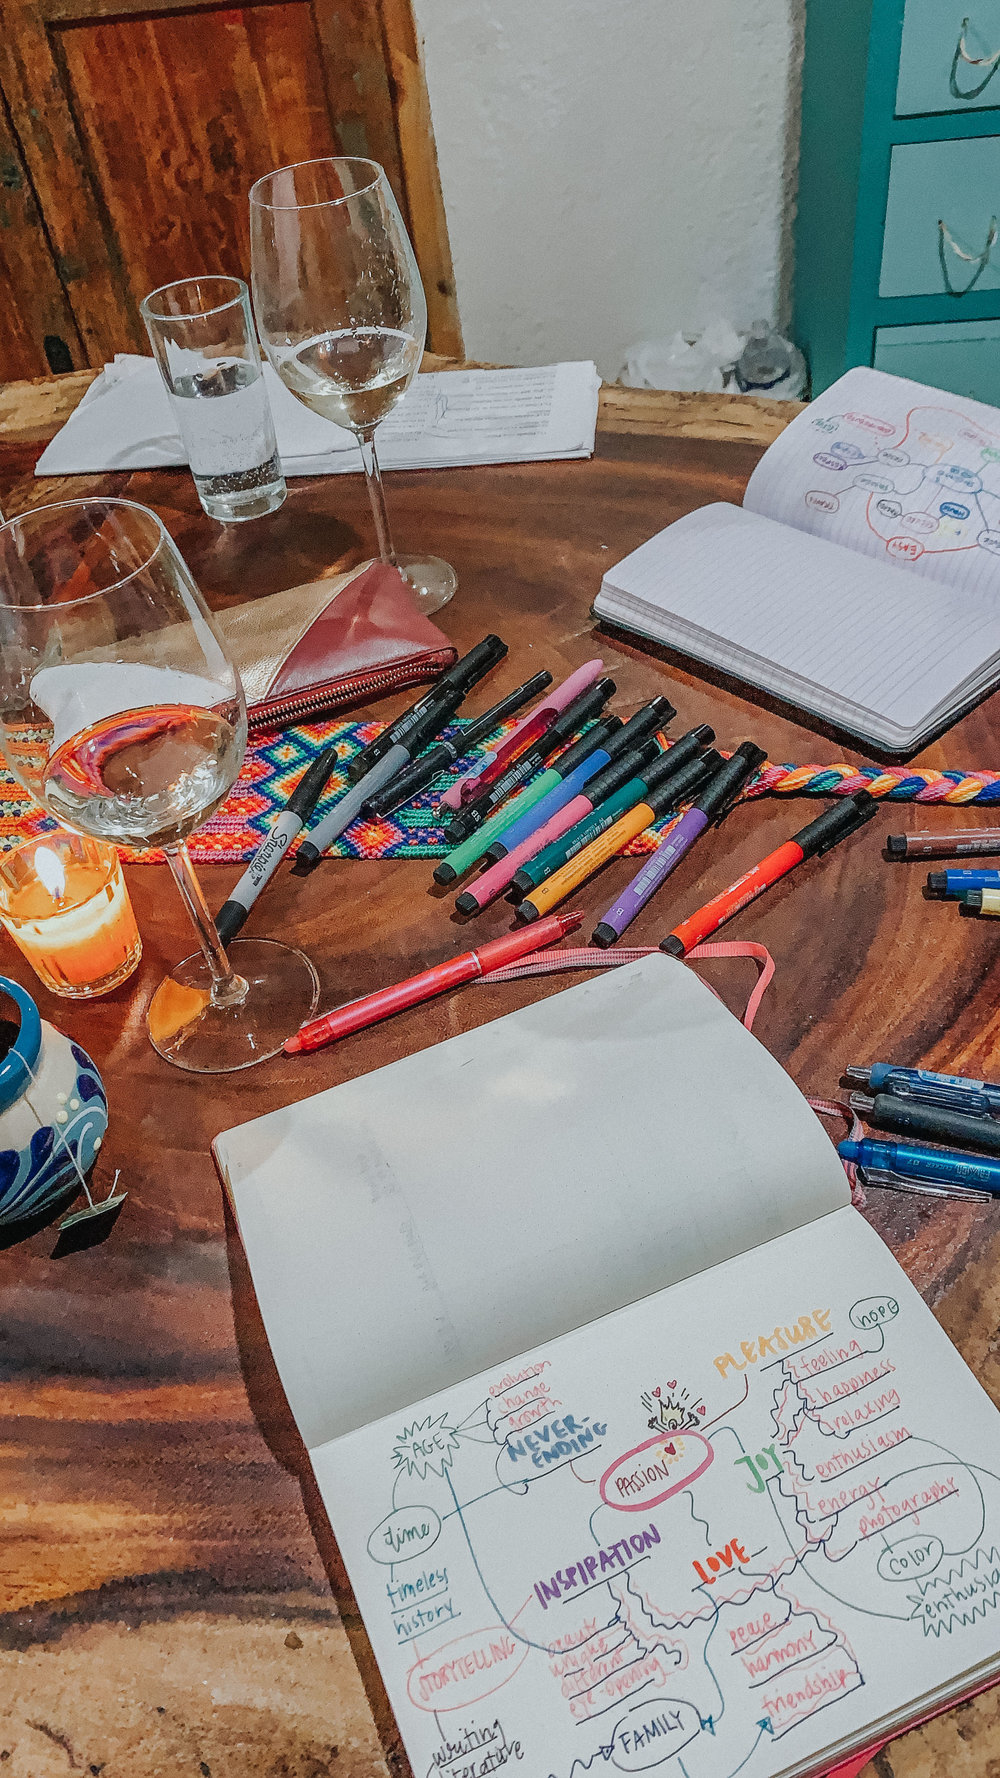 Mind Mapping: one of the many ways we try to connect with ourselves, eachother, and our creativity while we travel.